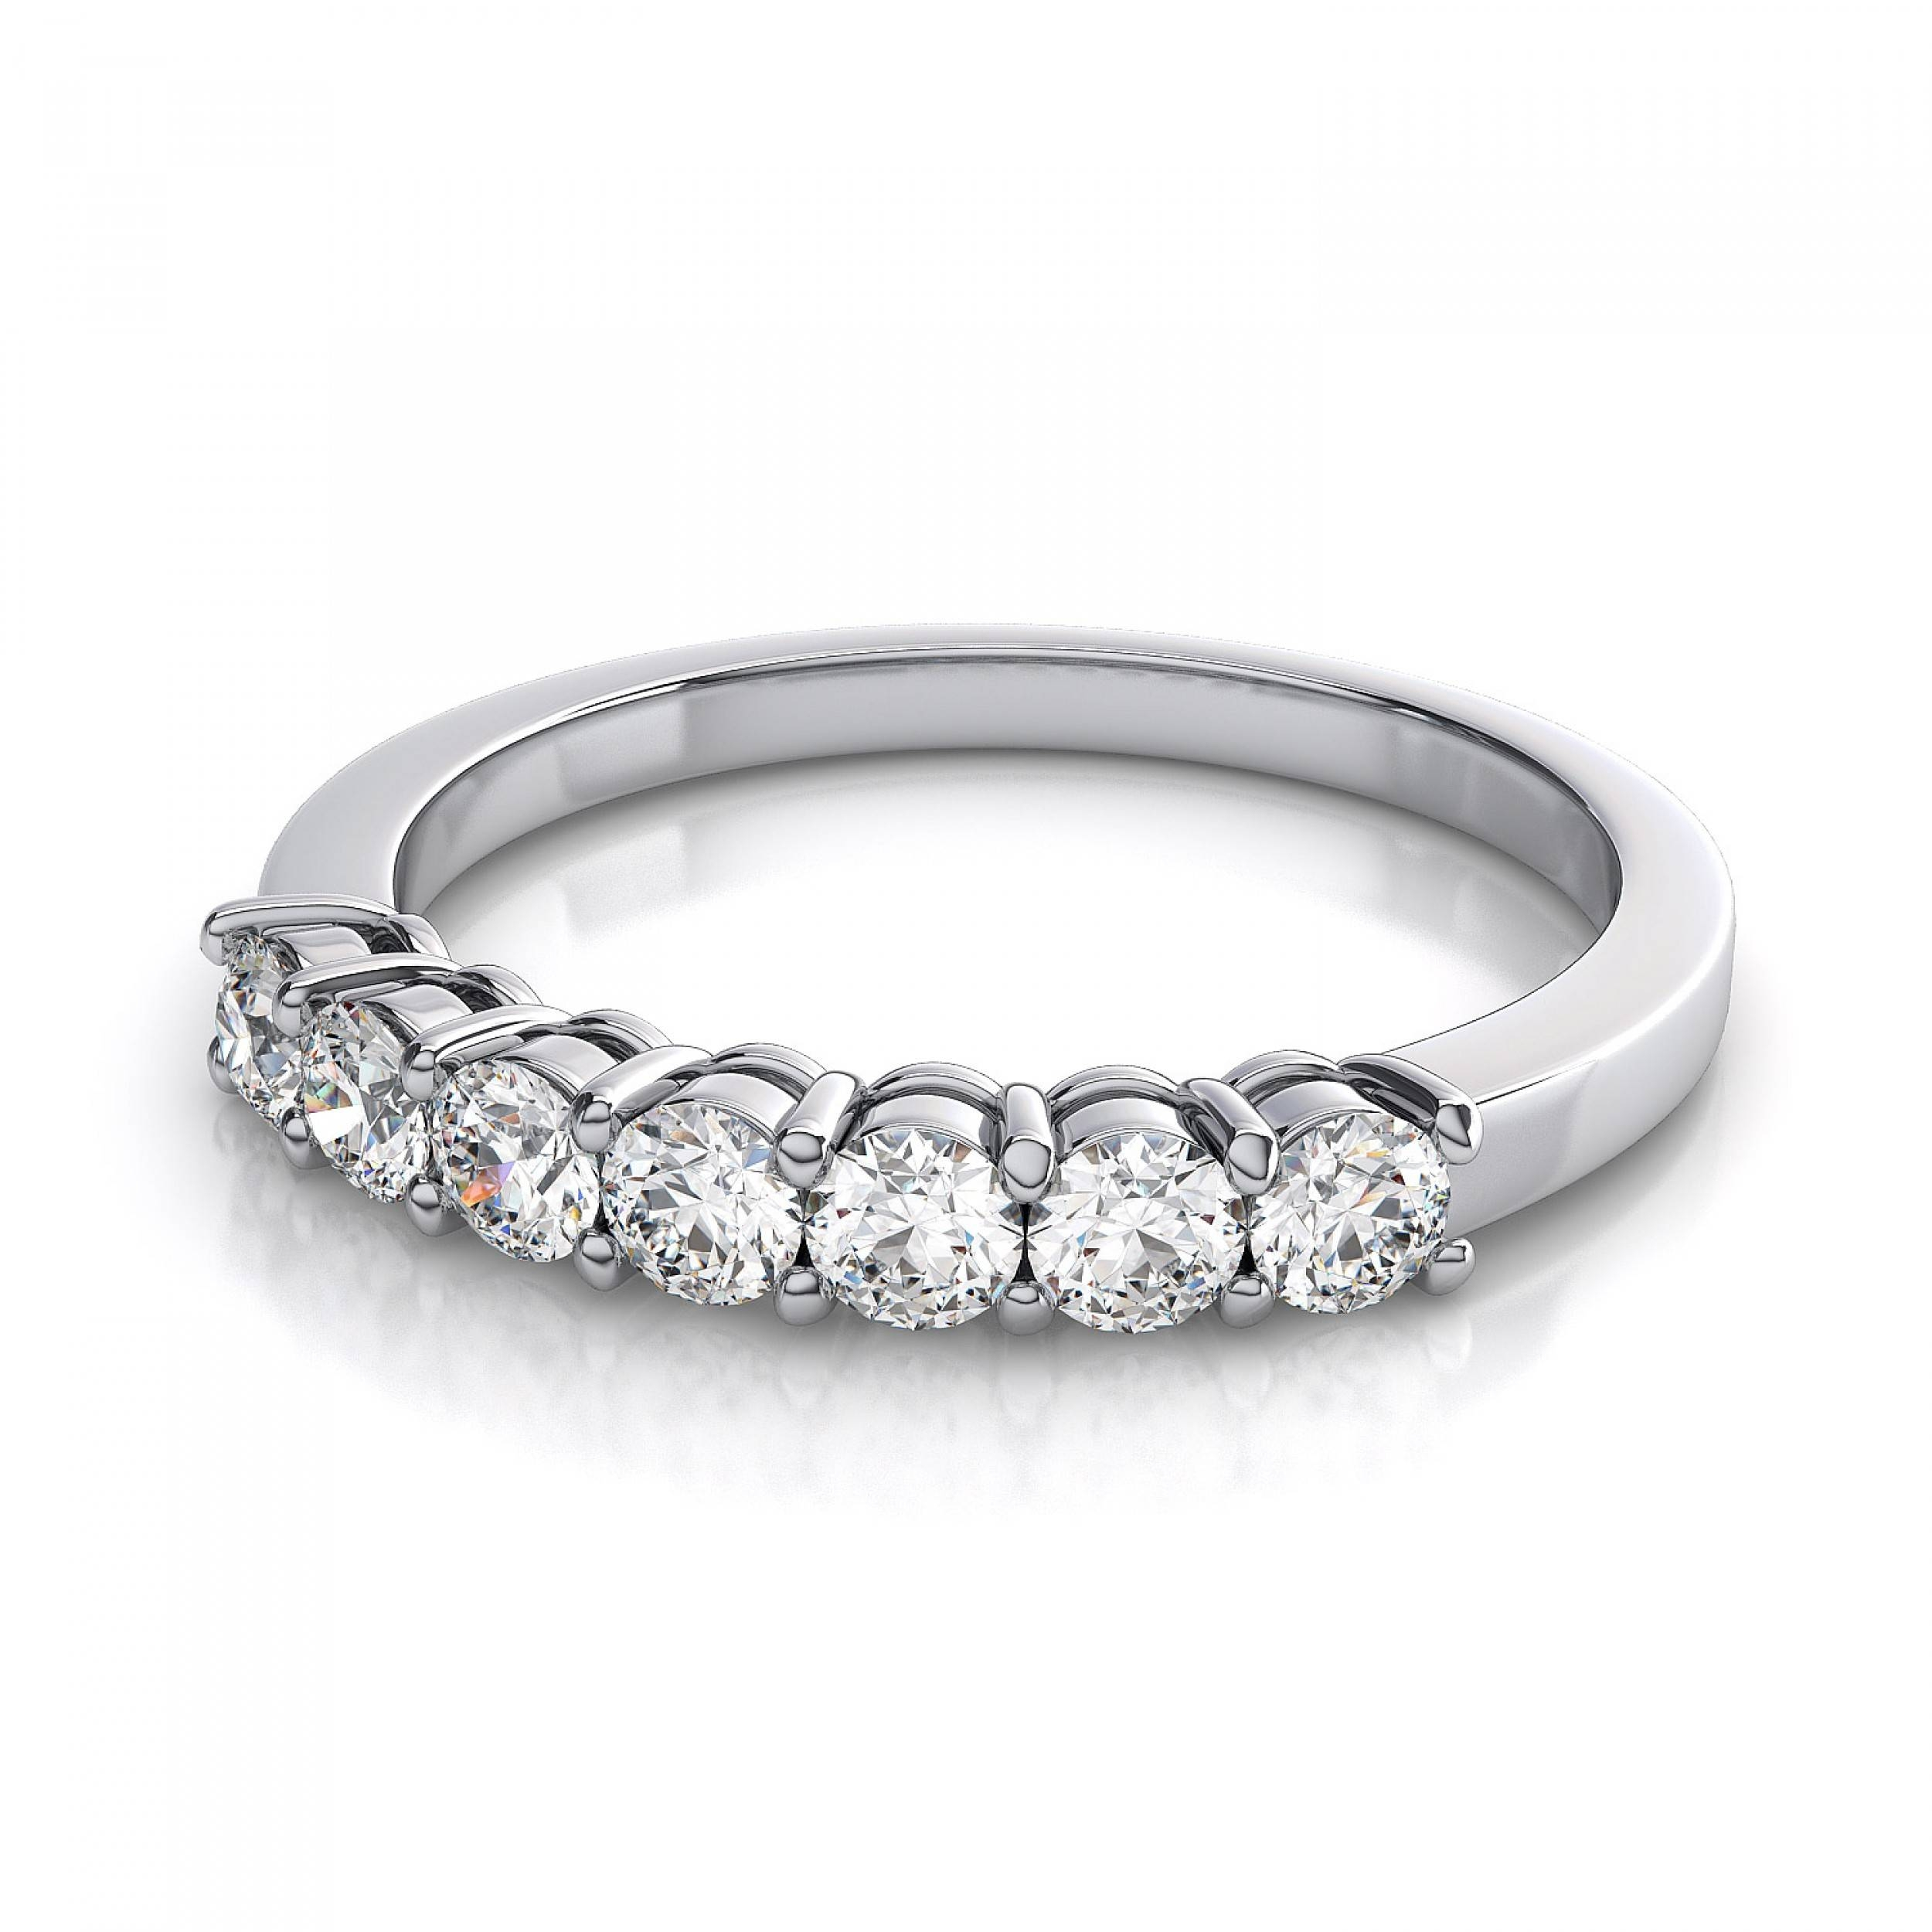 size expensive of under wedding million full rings carat ring prices mens dollar and tanishq